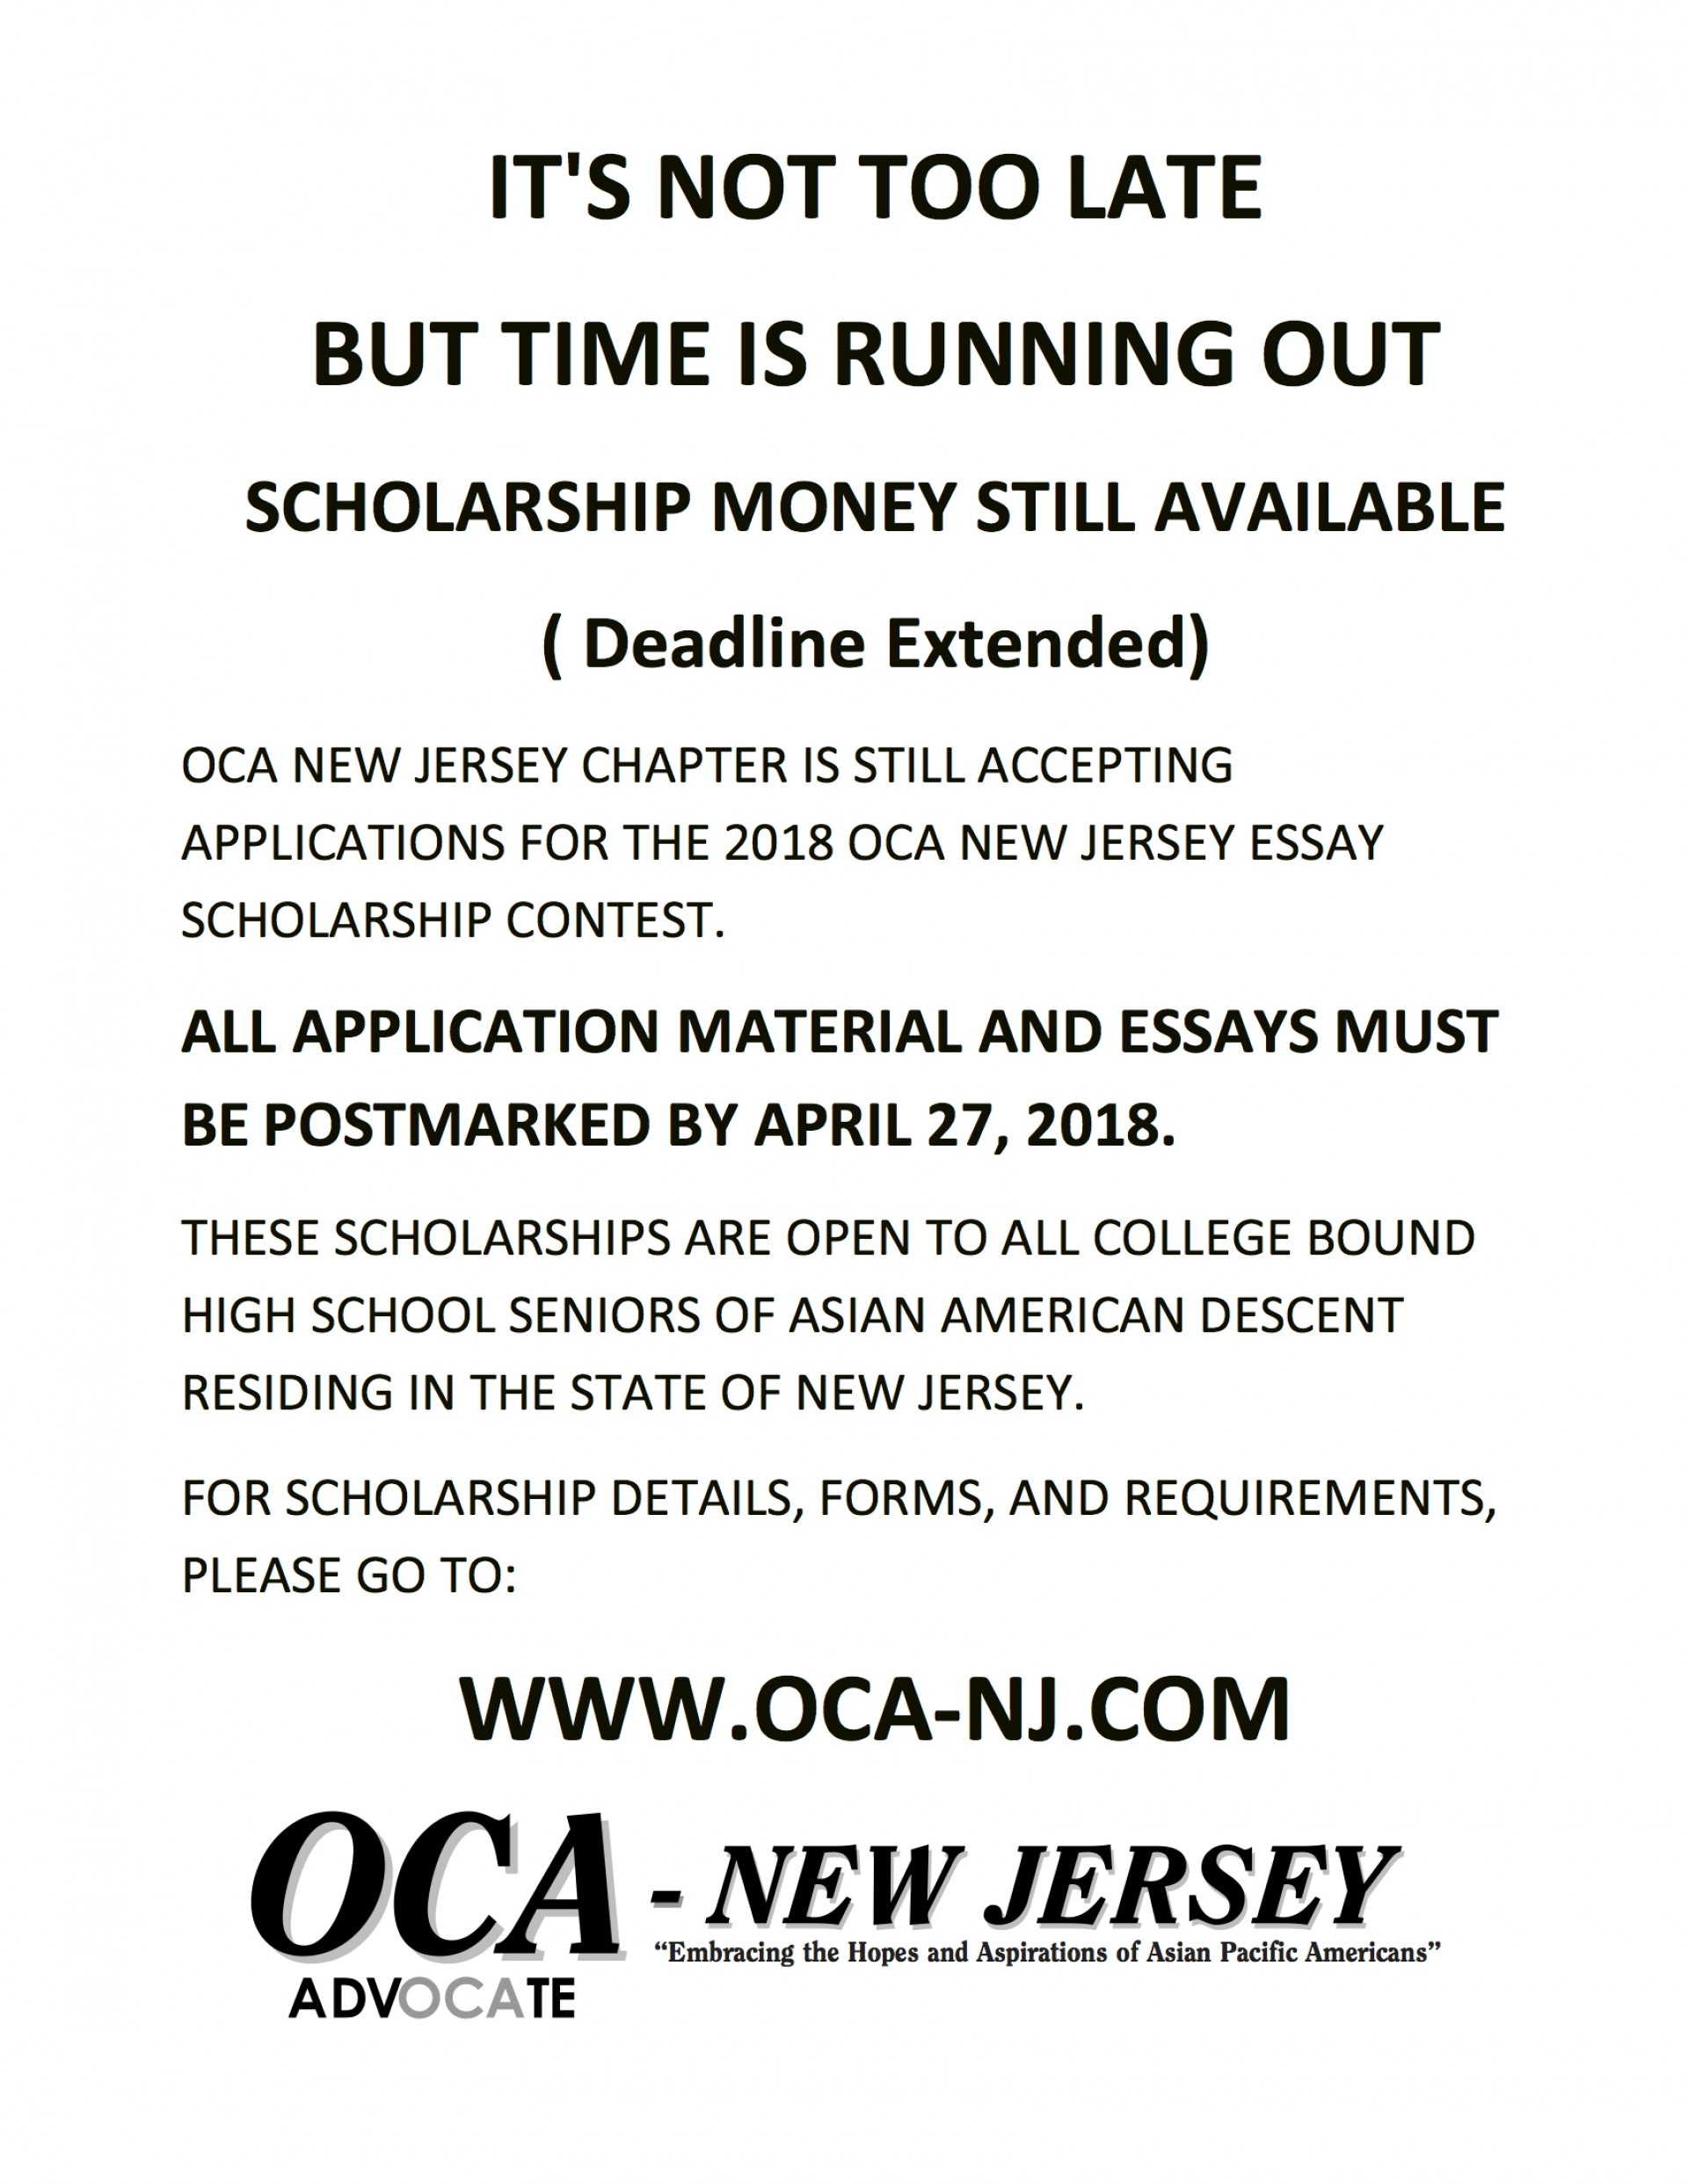 014 Essay Example Scholarships Entended Deadline Oca Nj Shocking For High School Students 2018 2019 1920